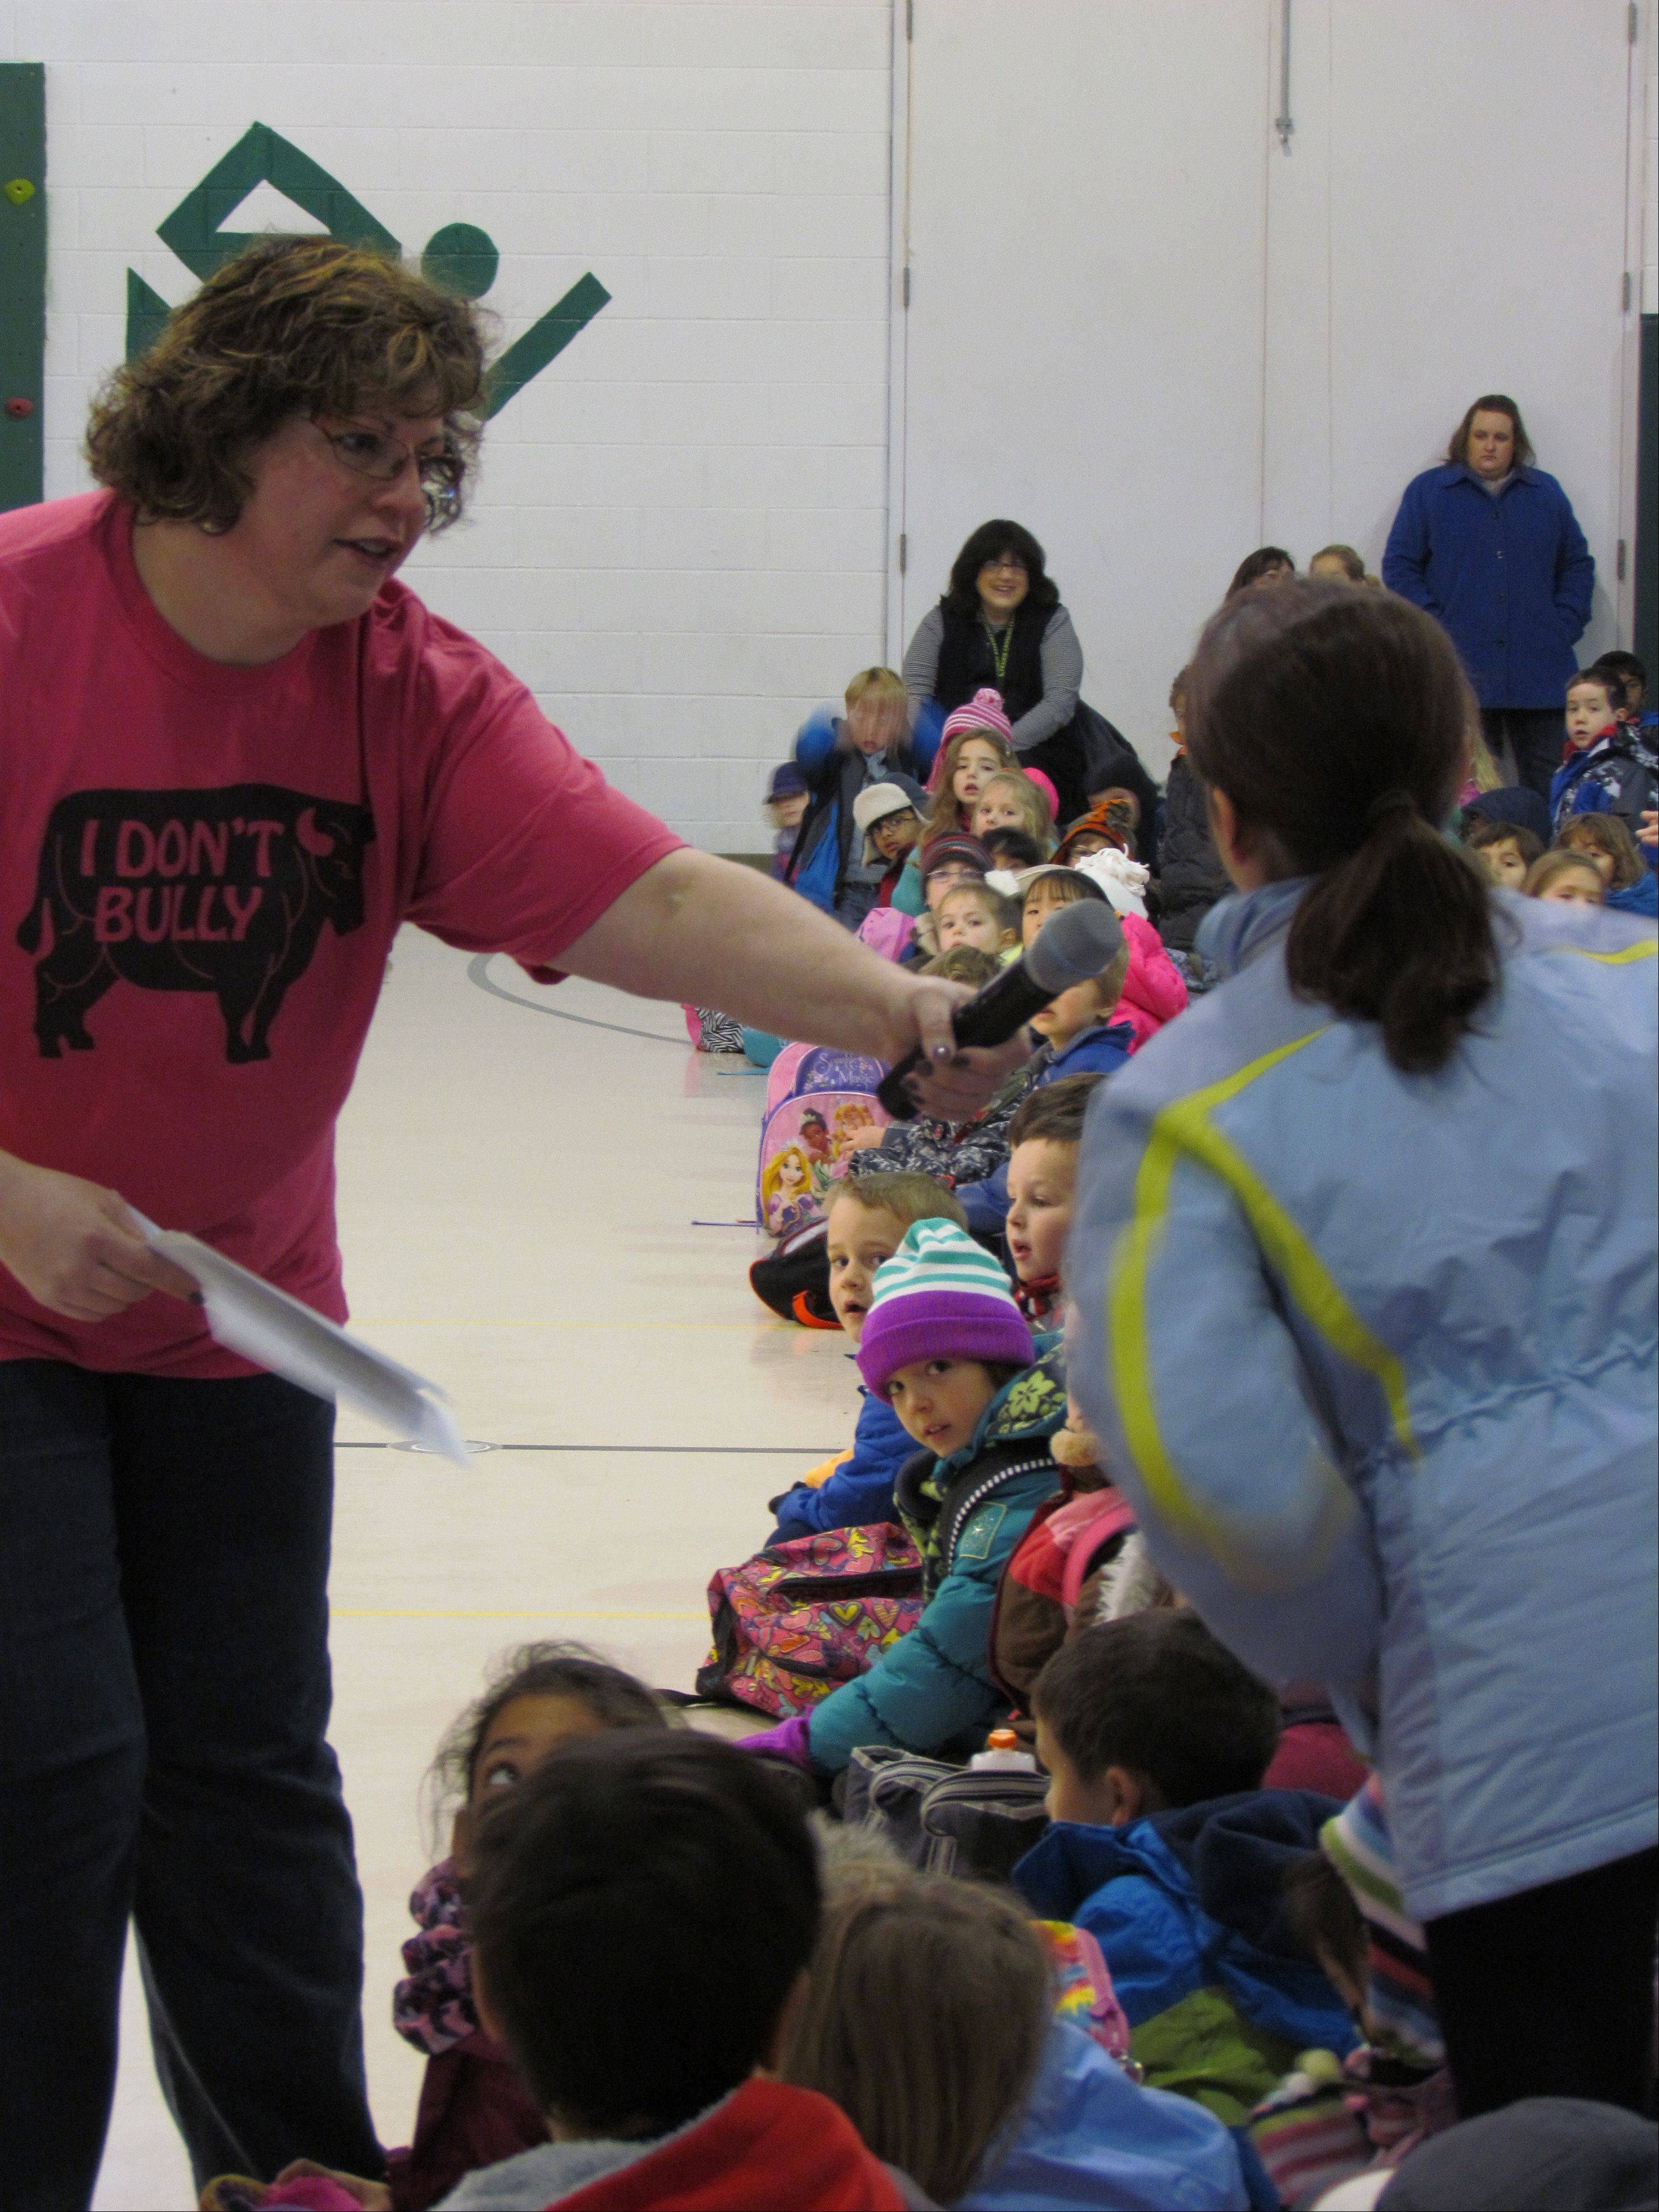 Social worker Caryn Meyer at Prairie Crossing Charter School in Grayslake addresses children in Monday's opening ceremony for Bully Awareness Week there.